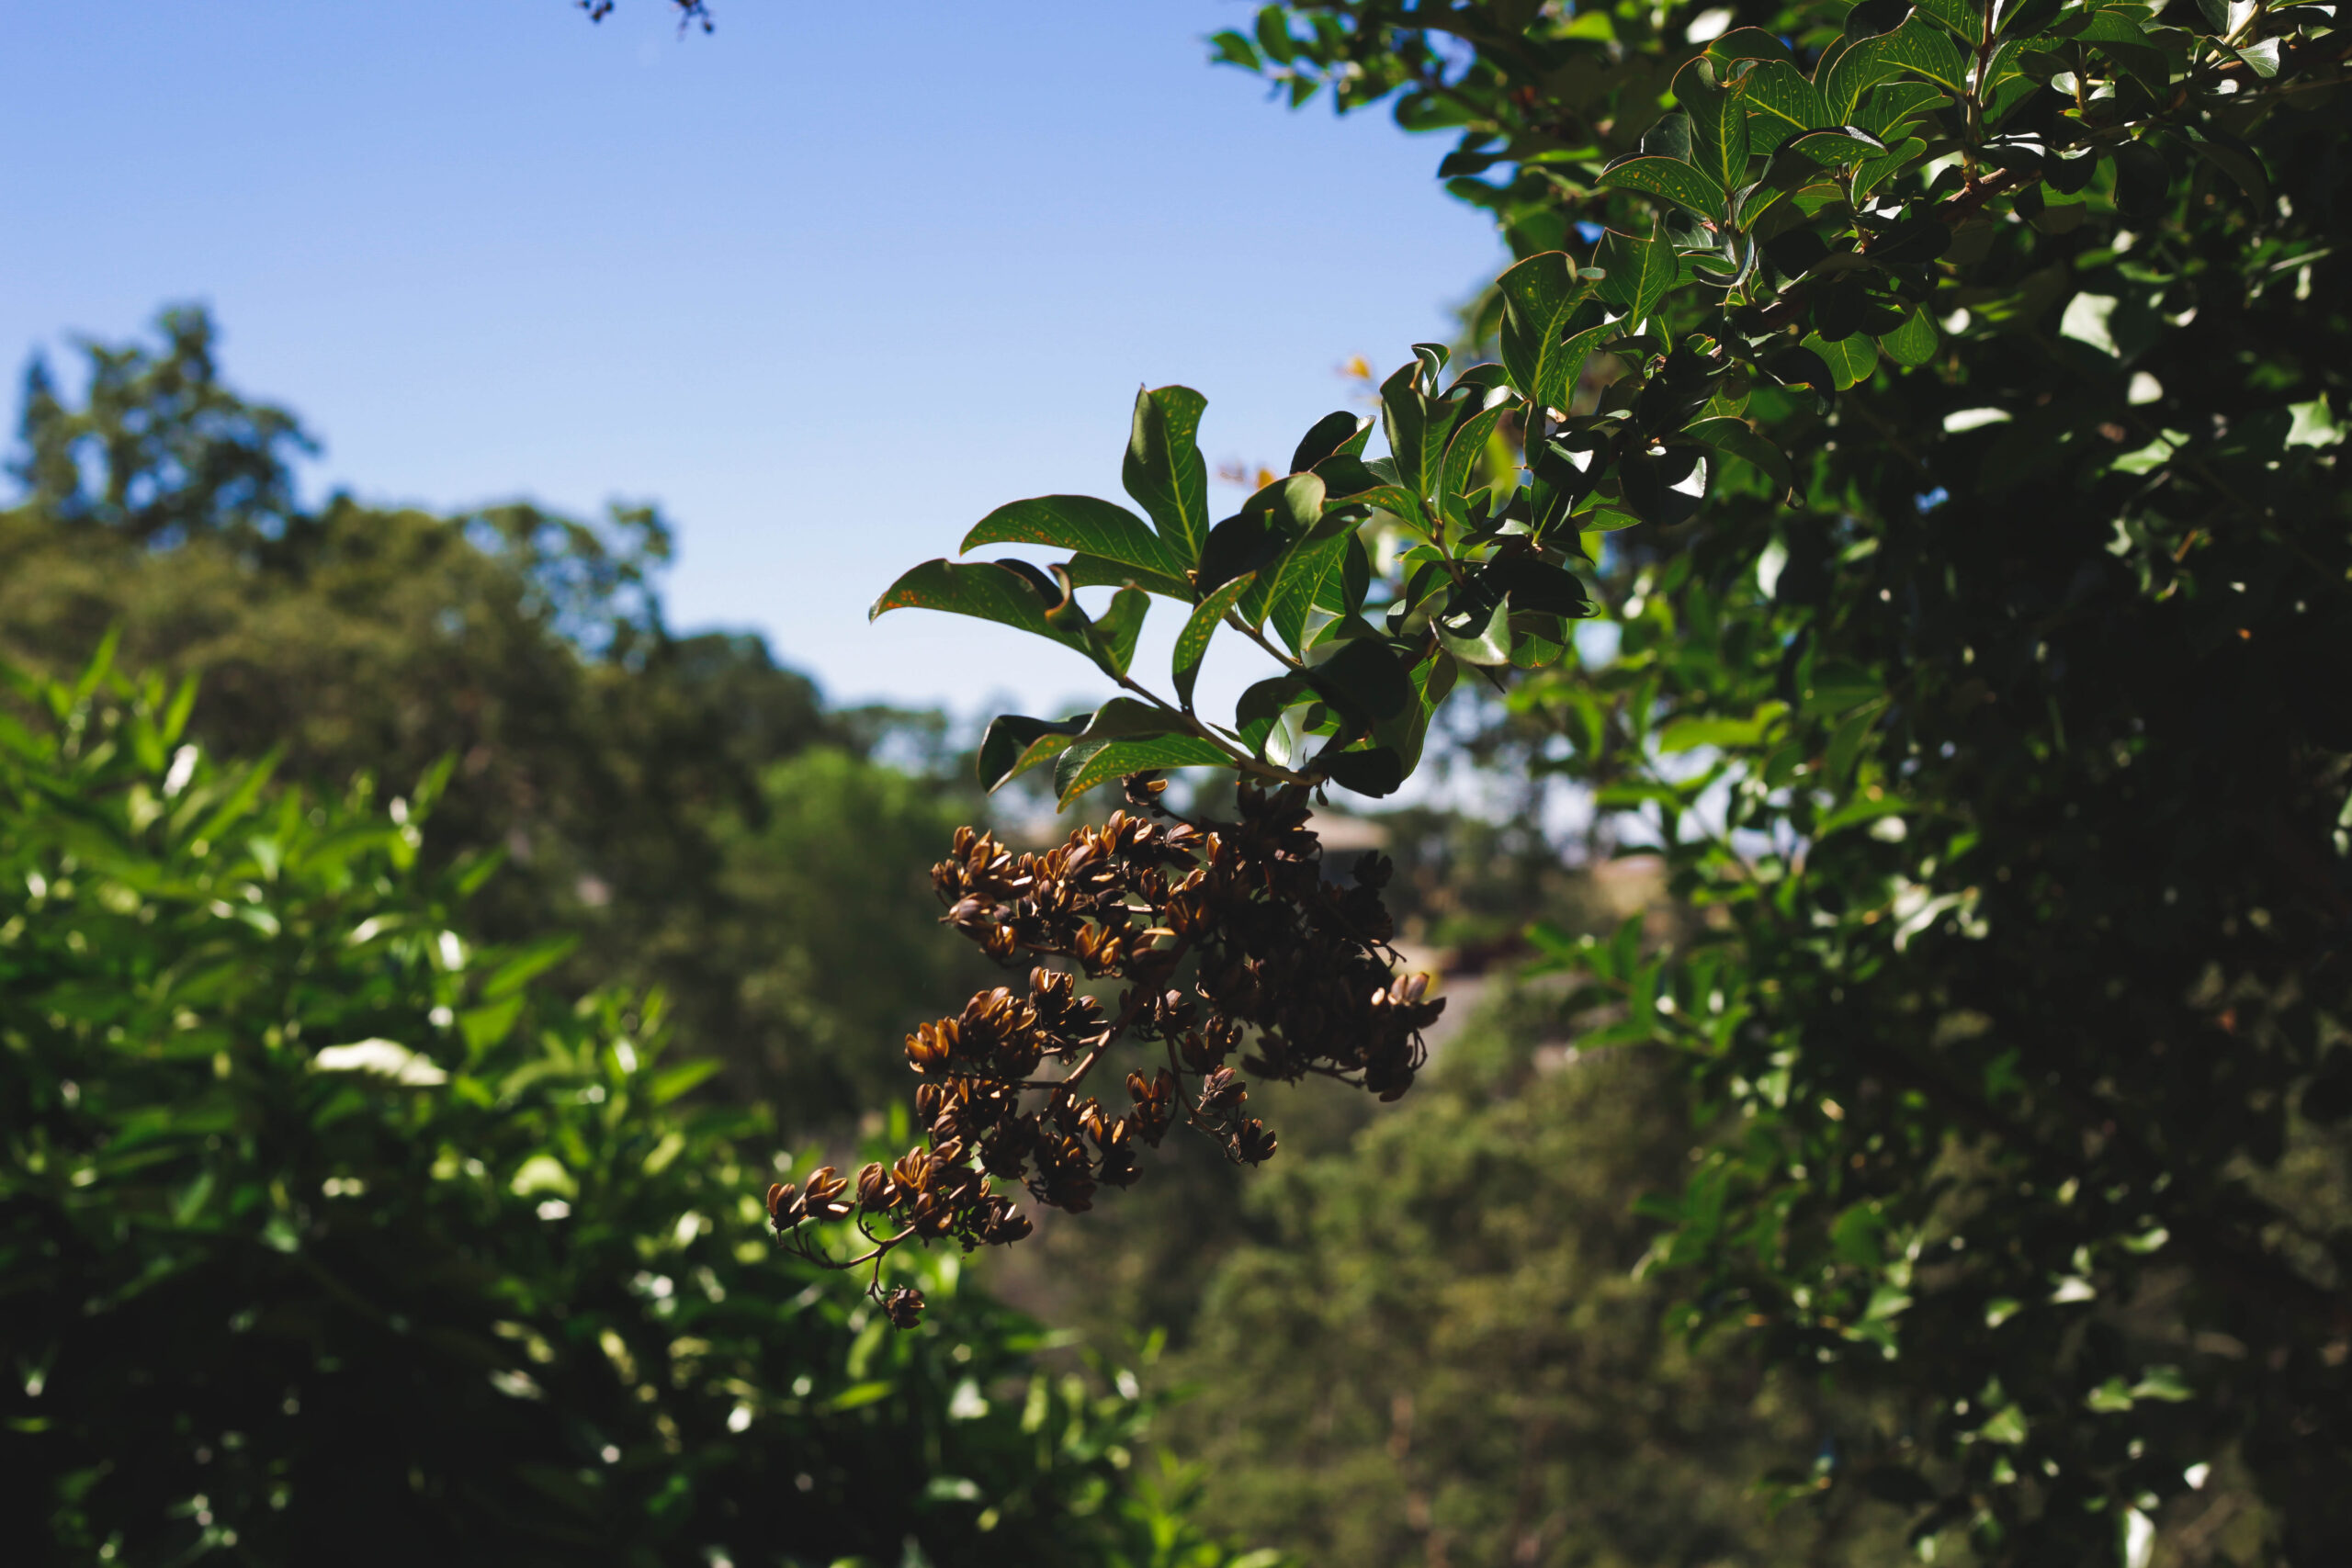 this image shows tree pest control in carlsbad california